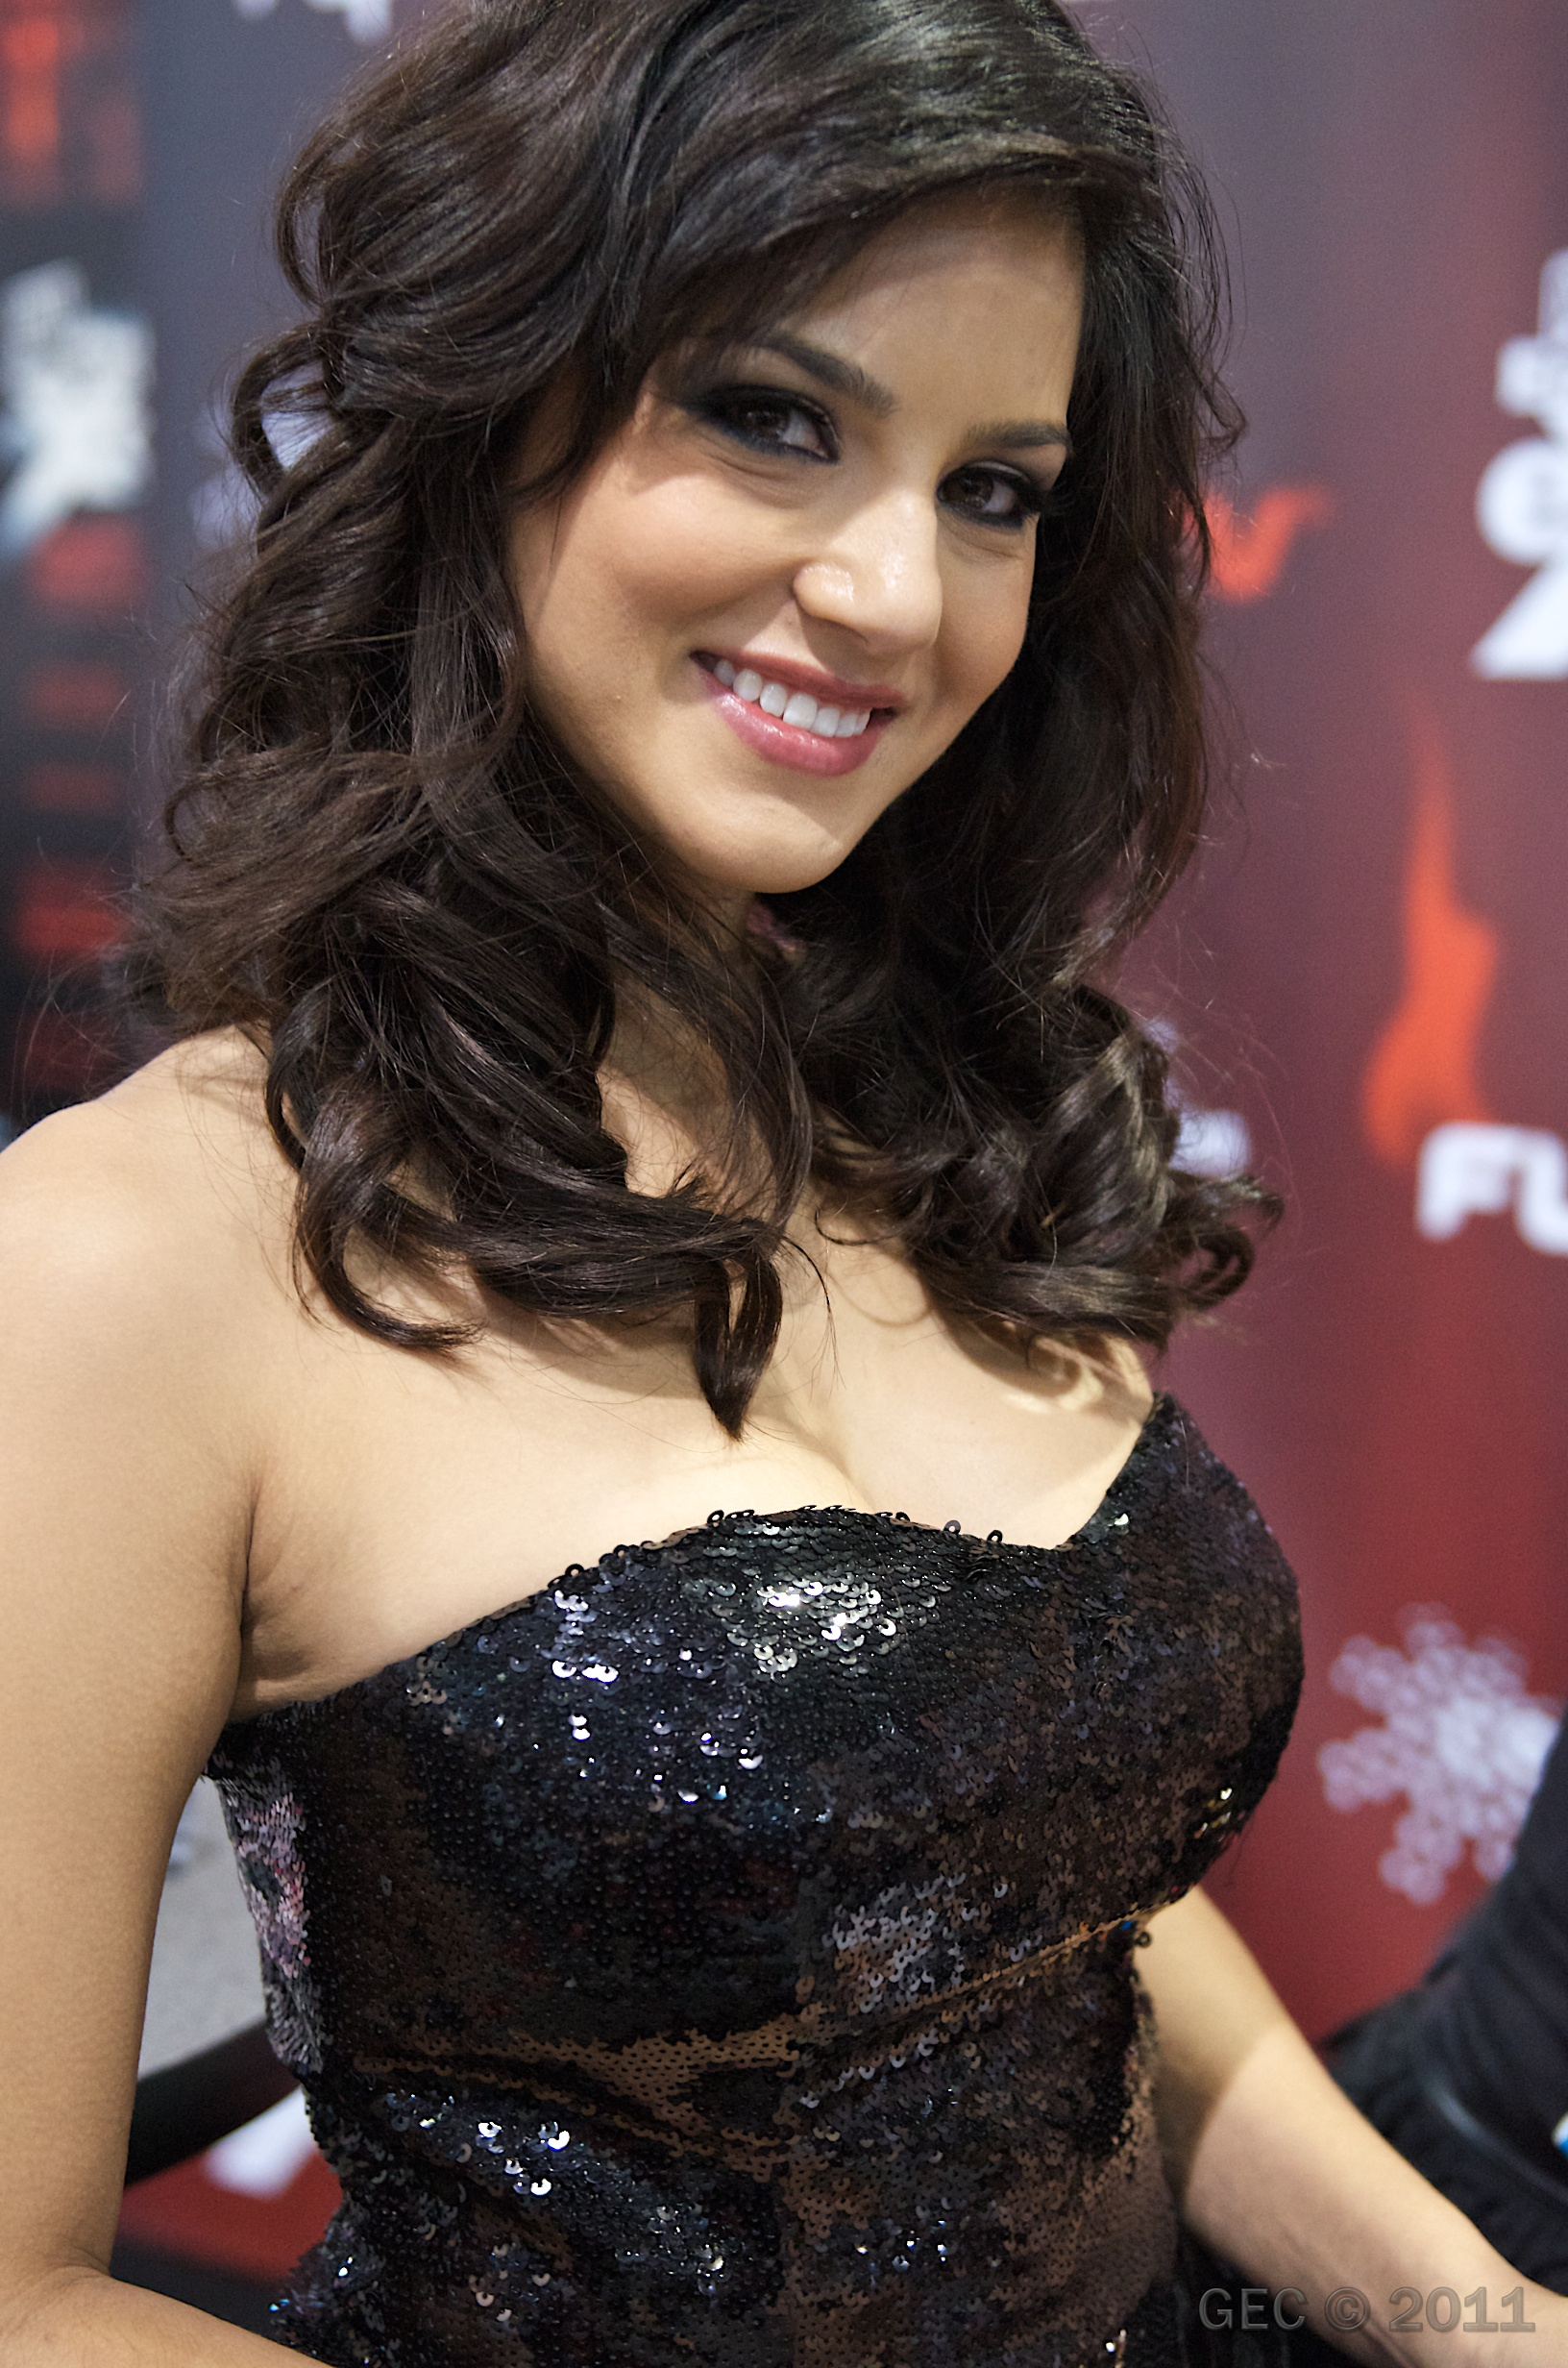 file:sunny leone avn 2011 2 - wikimedia commons